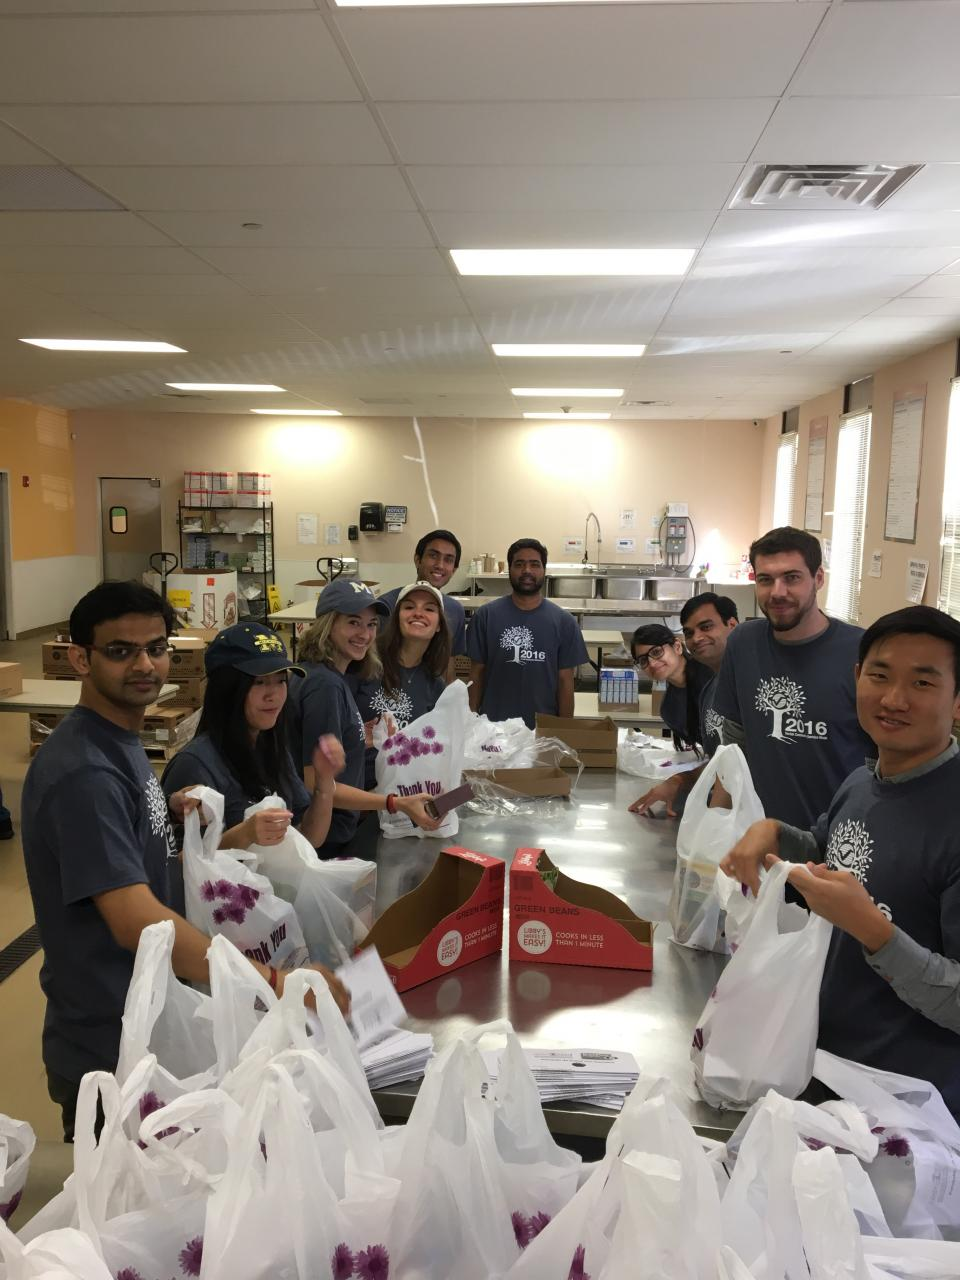 Verisk Volunteer Week 2016 - Employees volunteer at Foodbank for Westchester